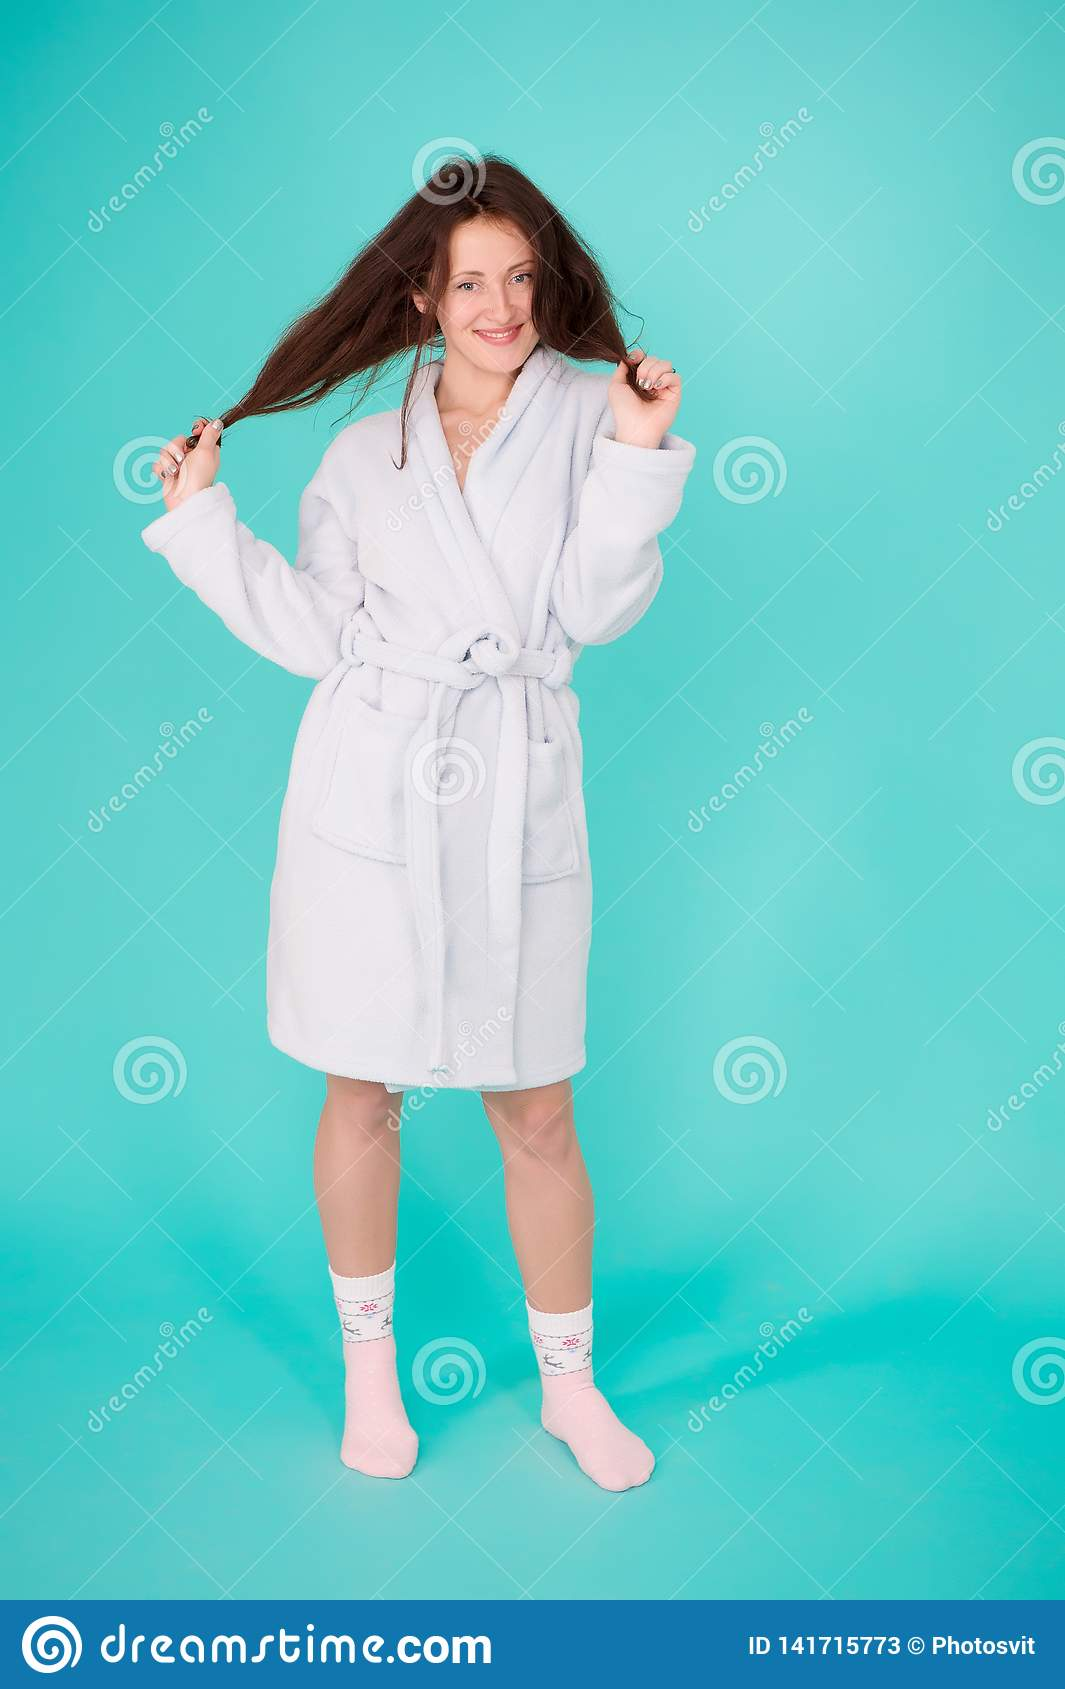 Girl no makeup face long hair wear bathrobe turquoise background. Ready for spa procedures. Woman relaxed after massage